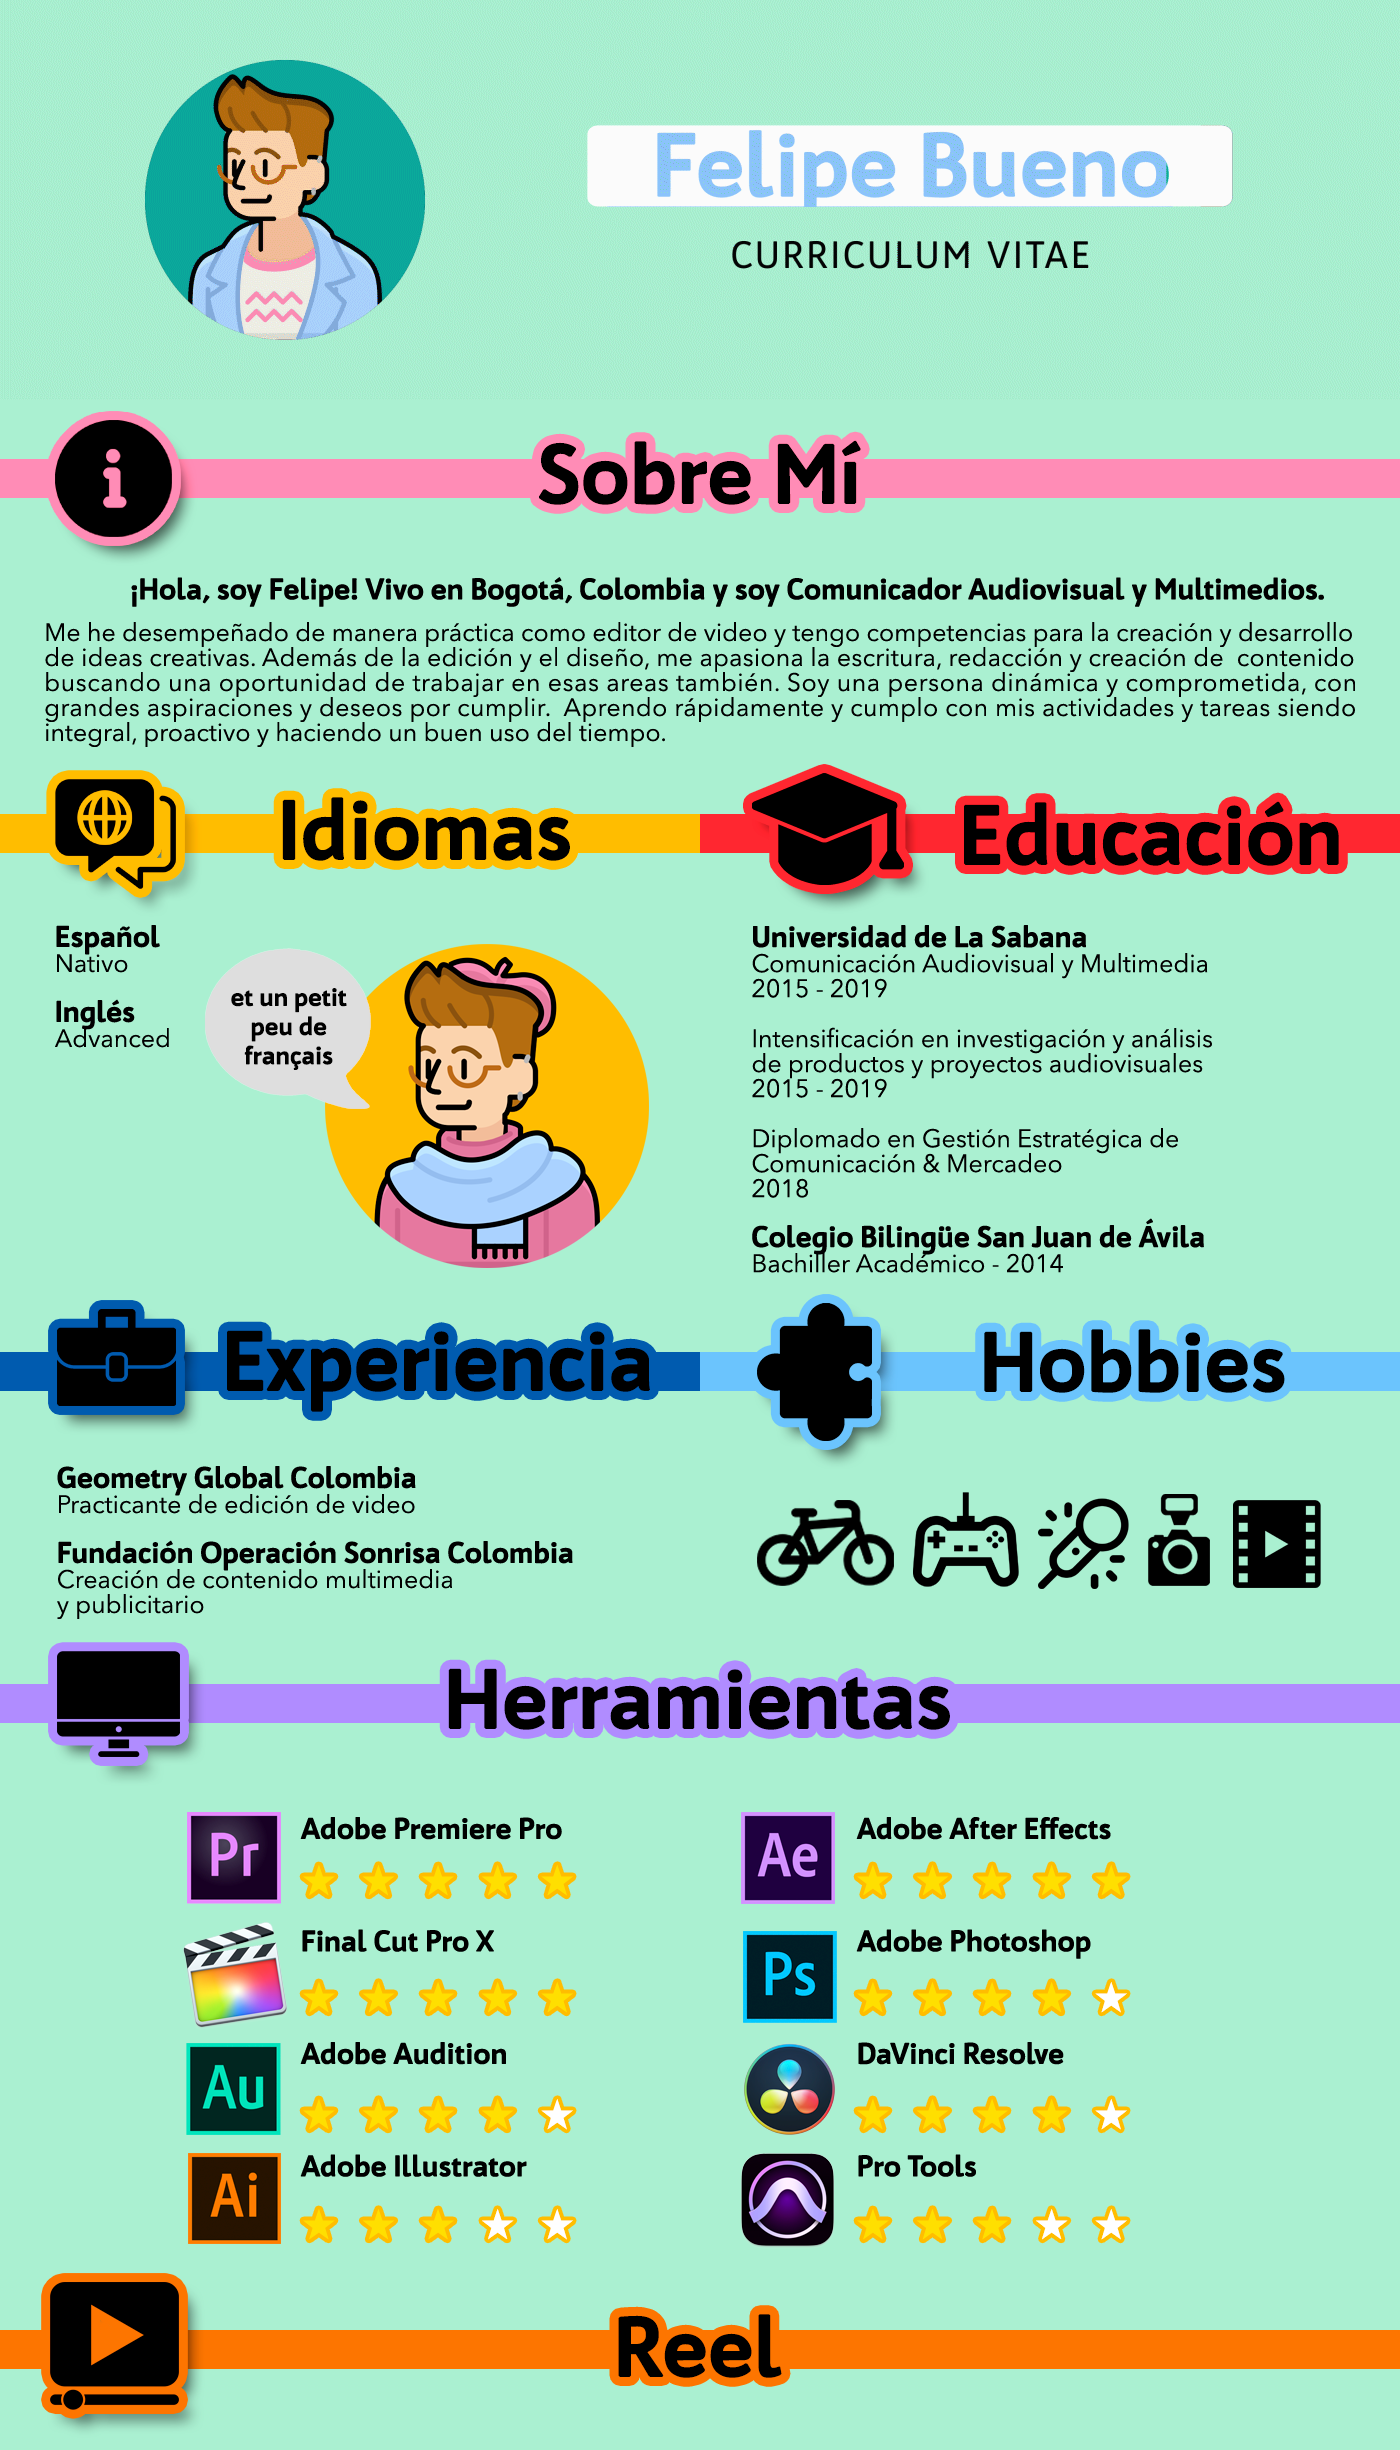 Illustrated Resume Cv With Video Reel Creative Cv Of Felipe Bueno Infographic Resume Cv Design Creative Graphic Resume